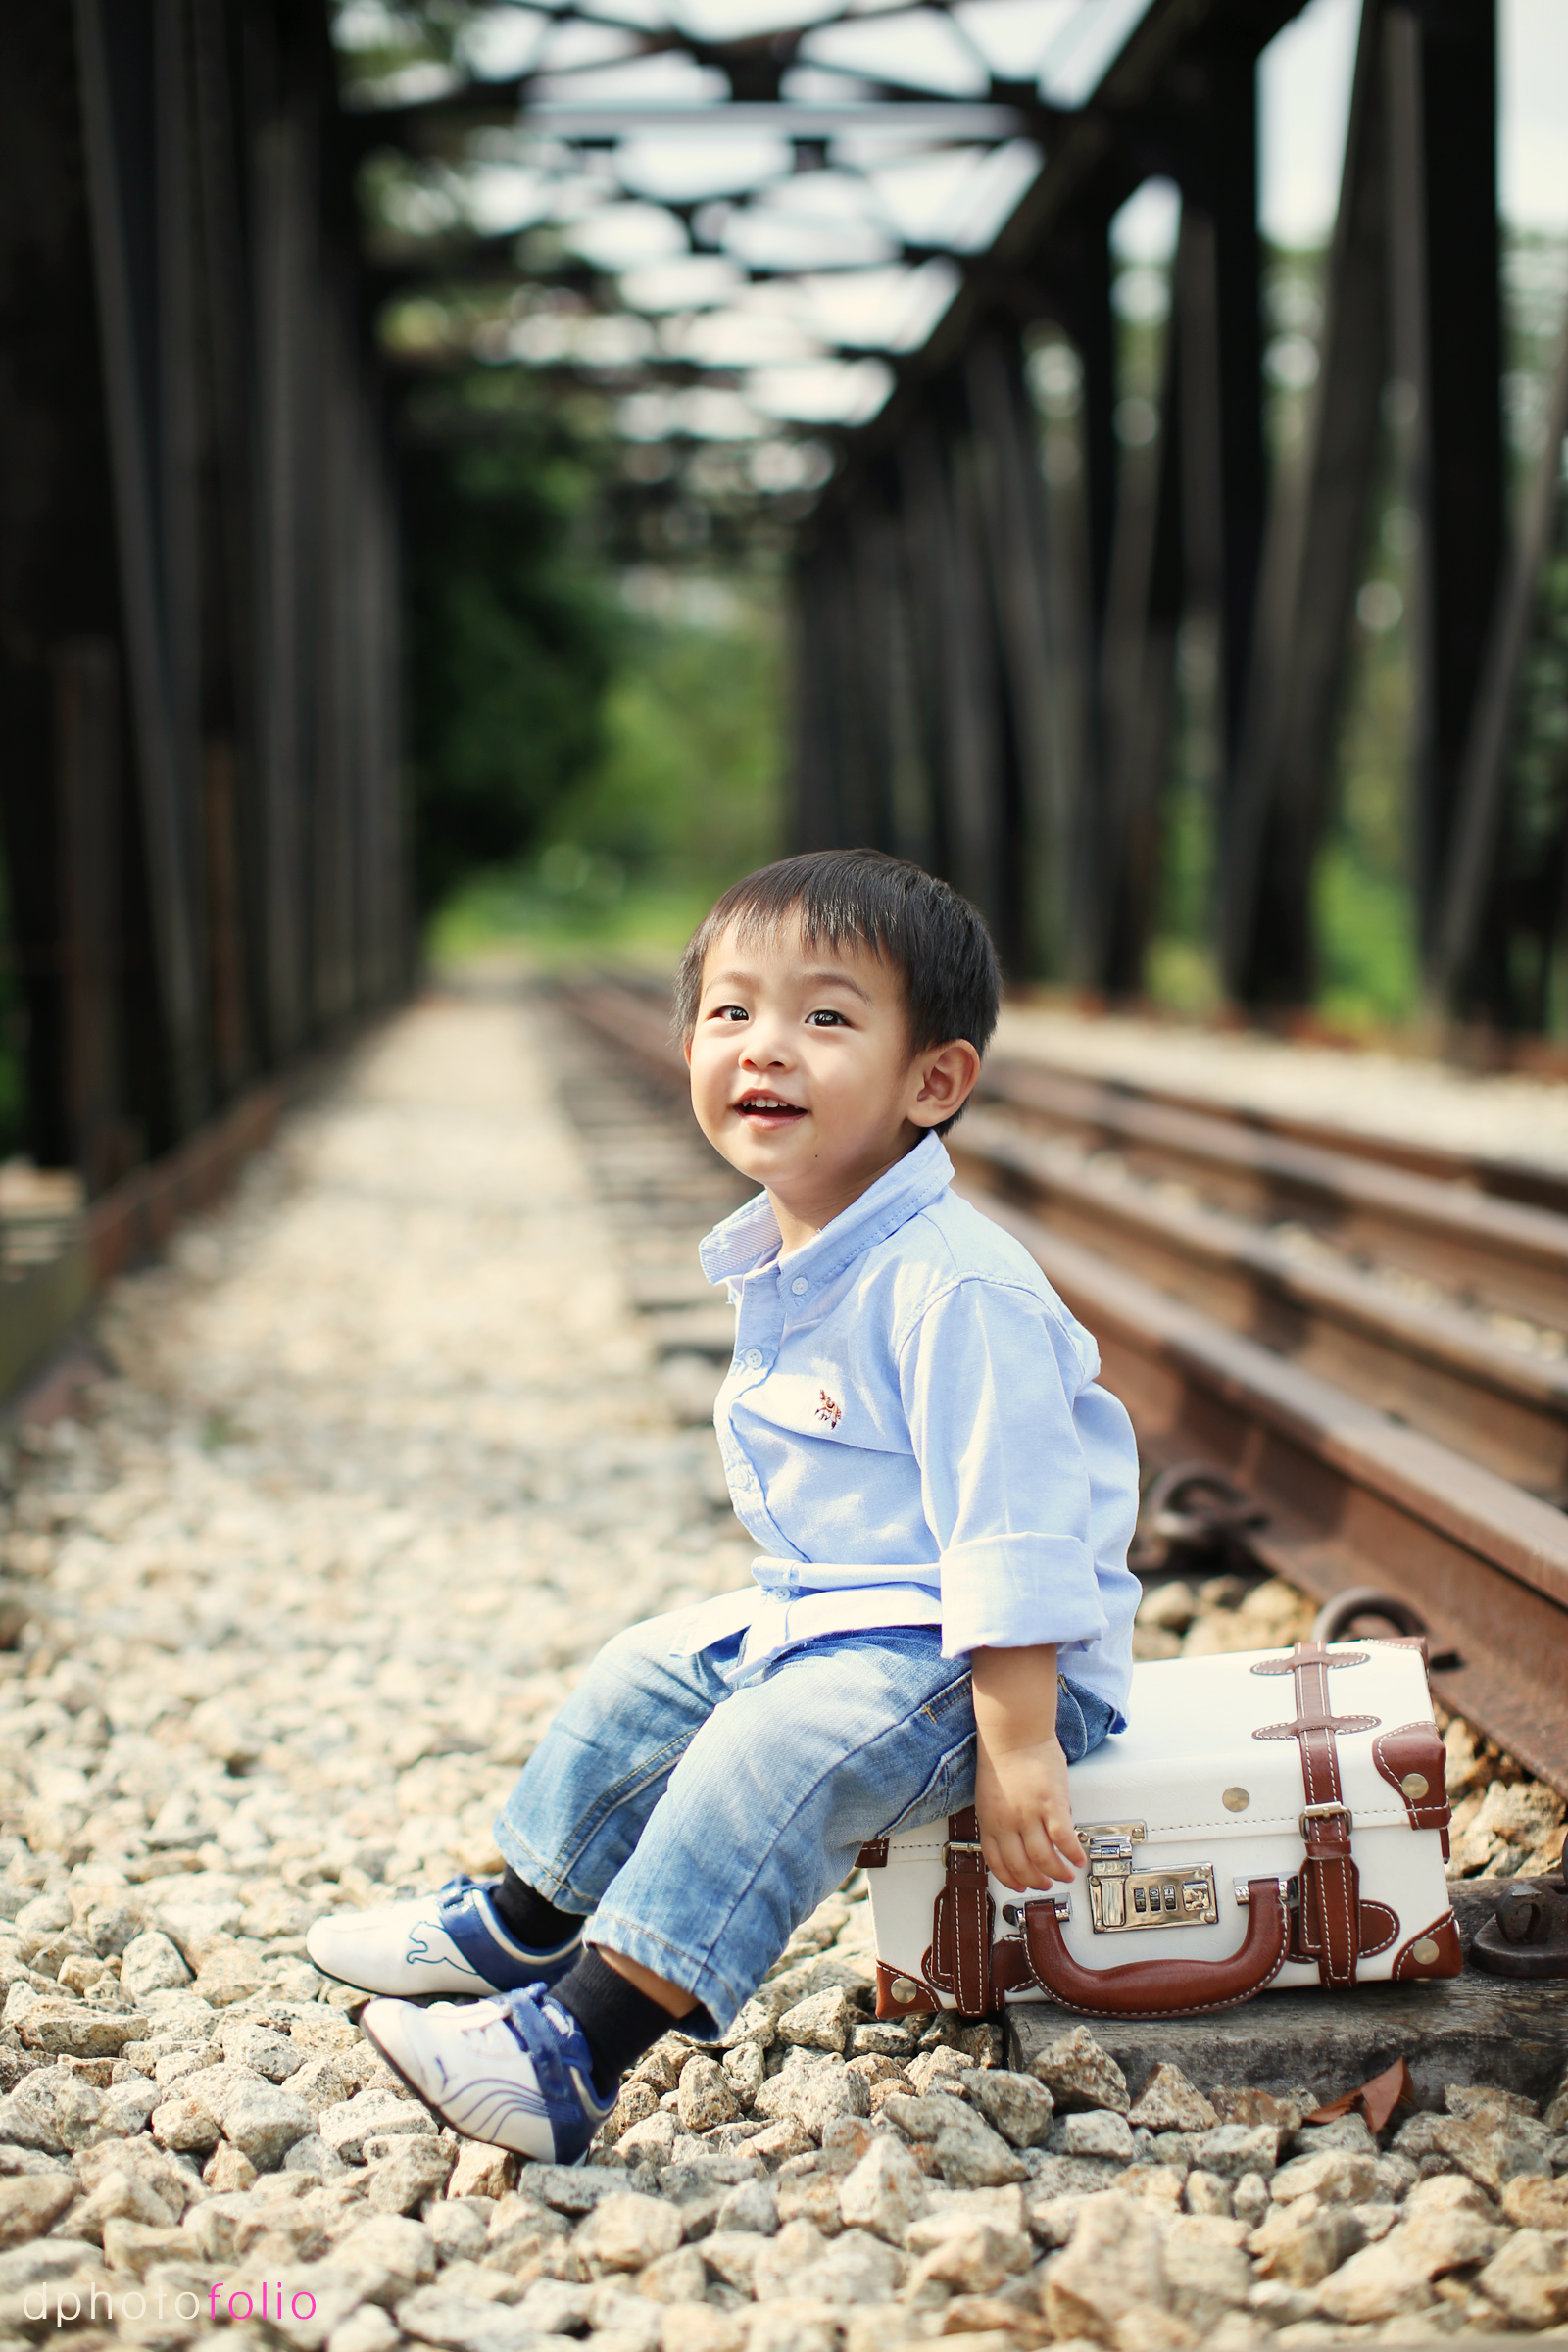 Affordable Outdoor Photography Services Singapore  Dphotofolio